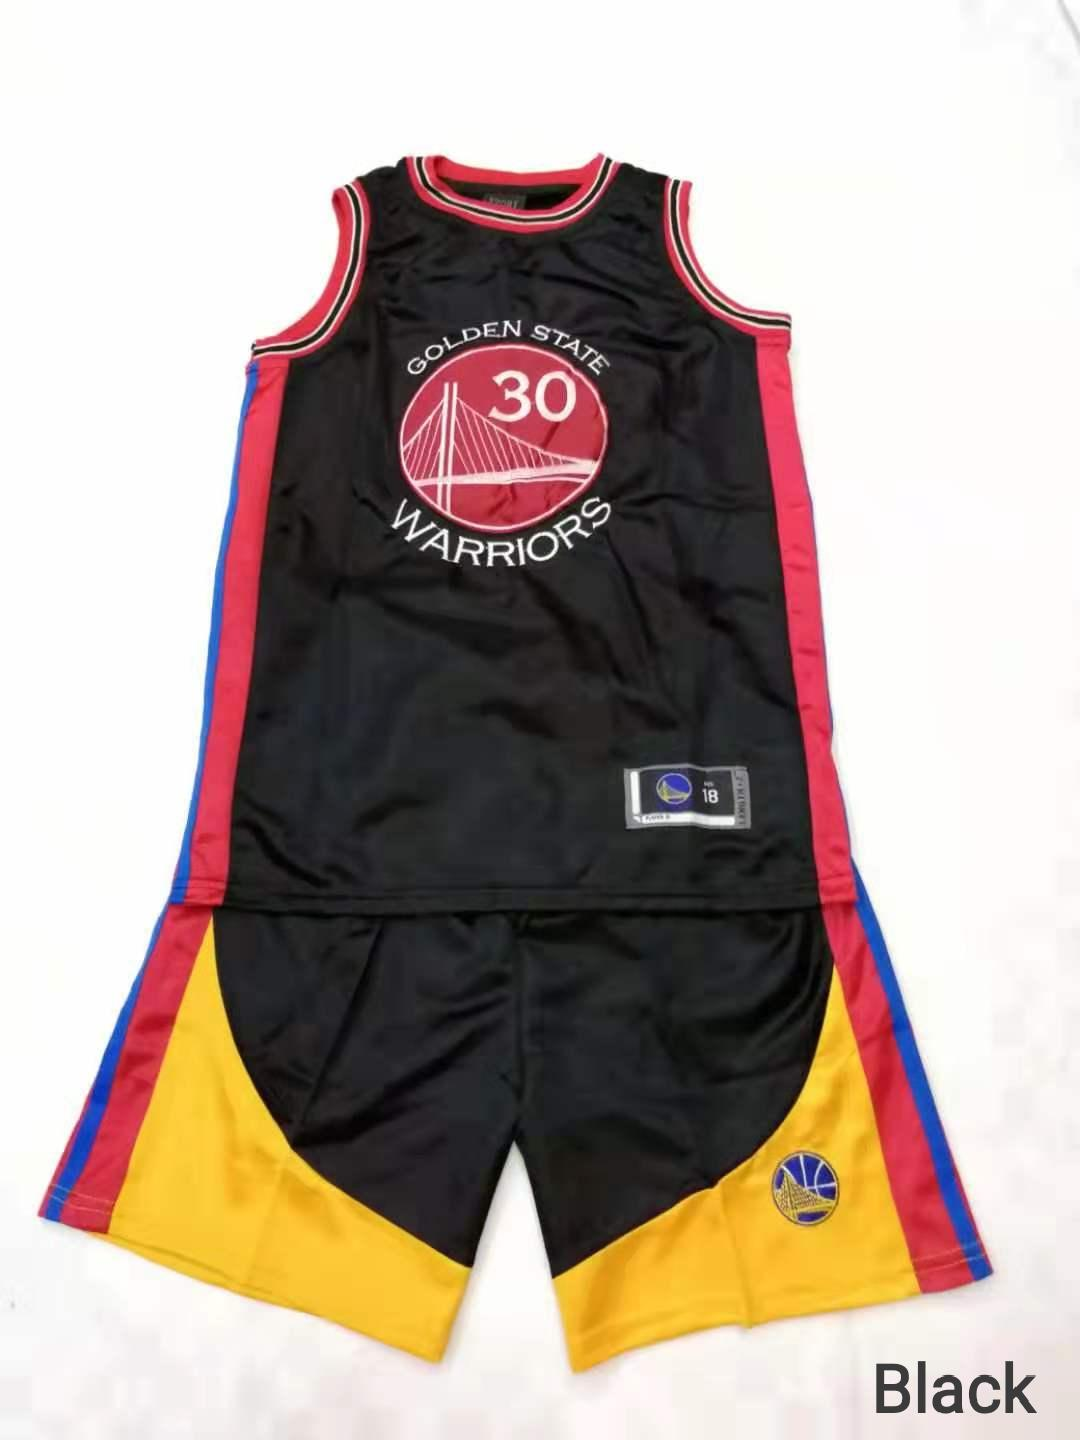 quality design a9a55 937ce NBA Jersey unisex set golden state for kids boys girls curry #30 basketall  suit red blue black red yellow white #5002